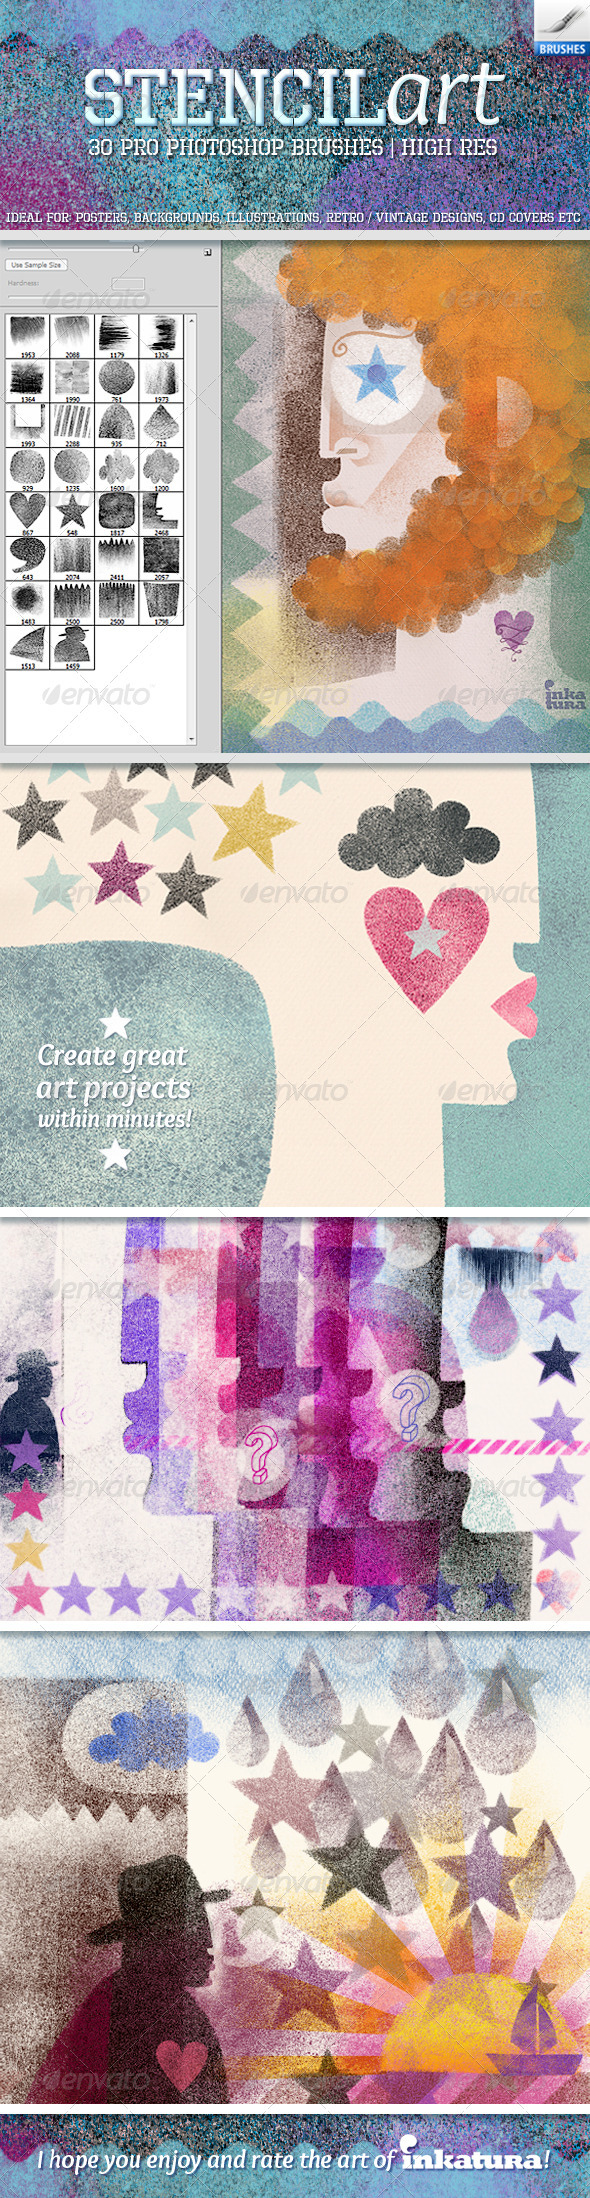 Stencil Art Brushes - Grunge Brushes